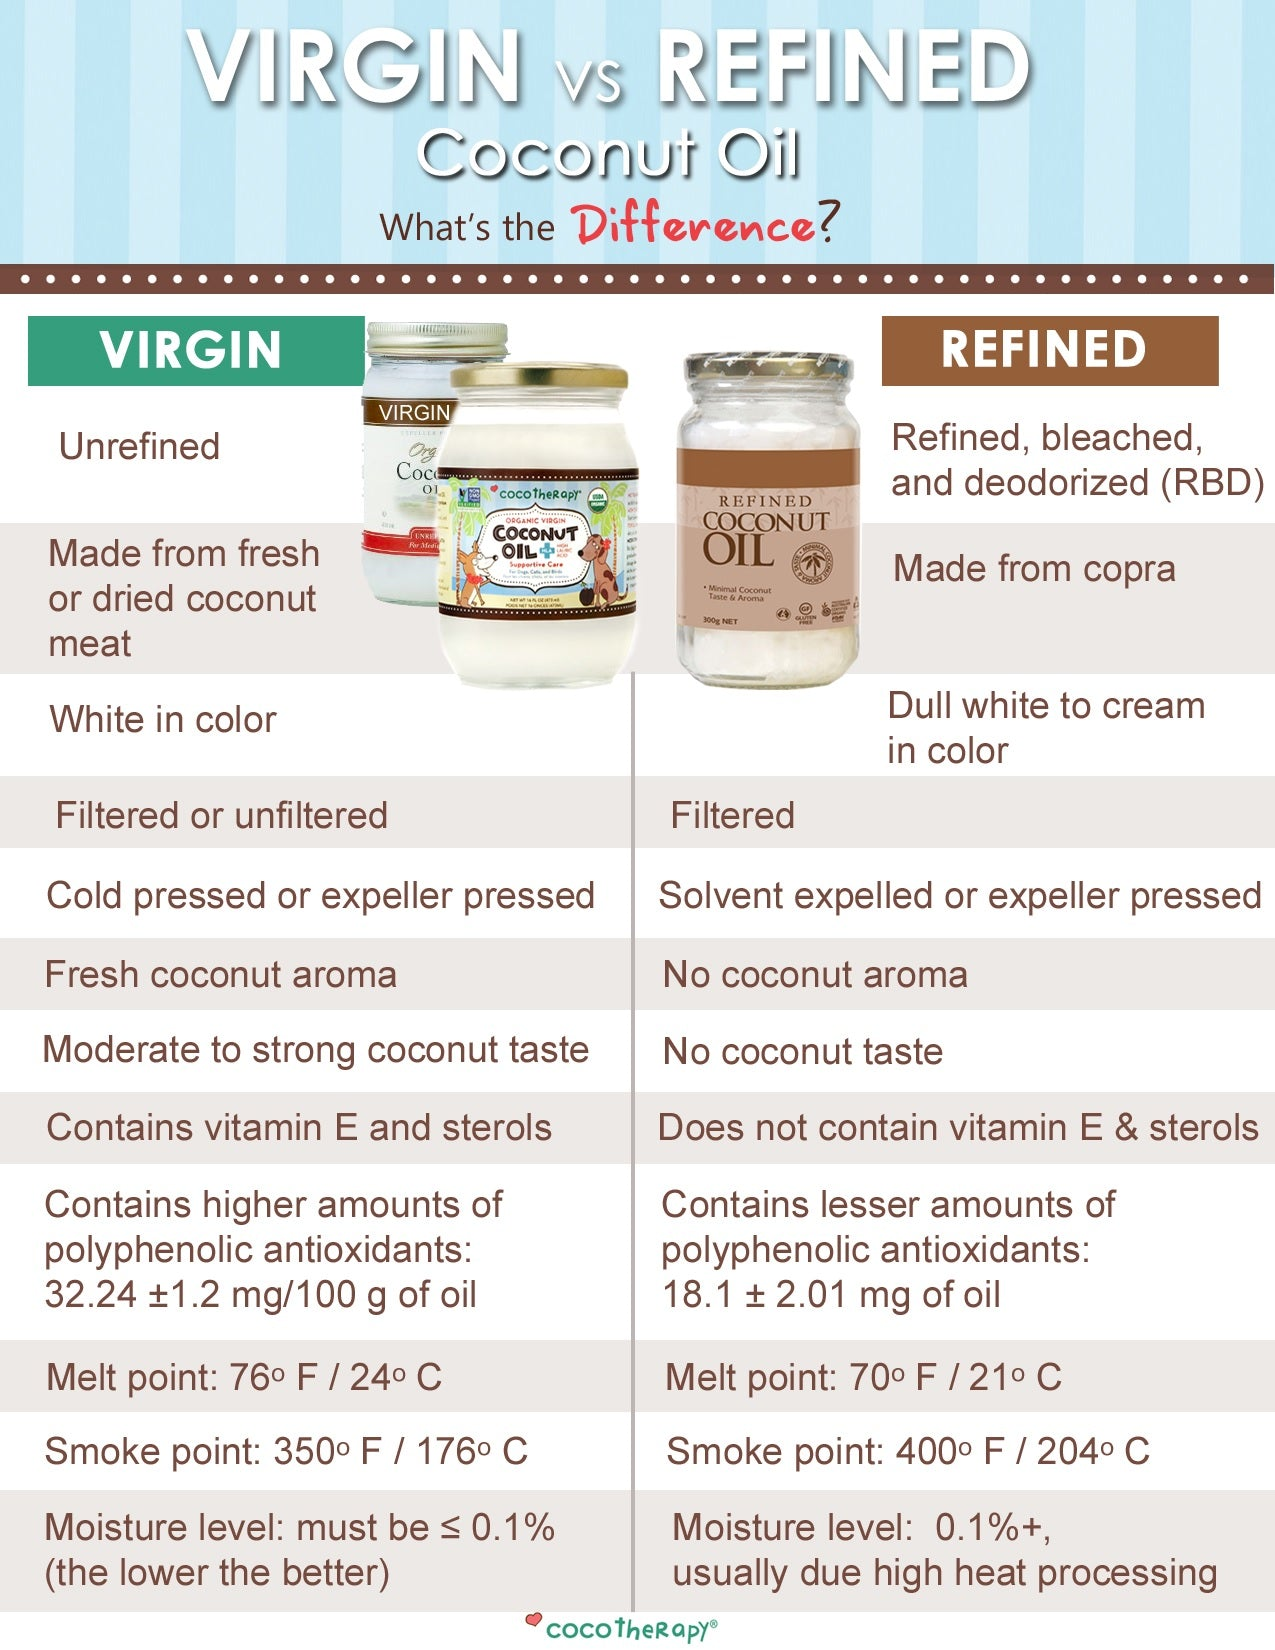 CocoTherapy differences in coconut oil